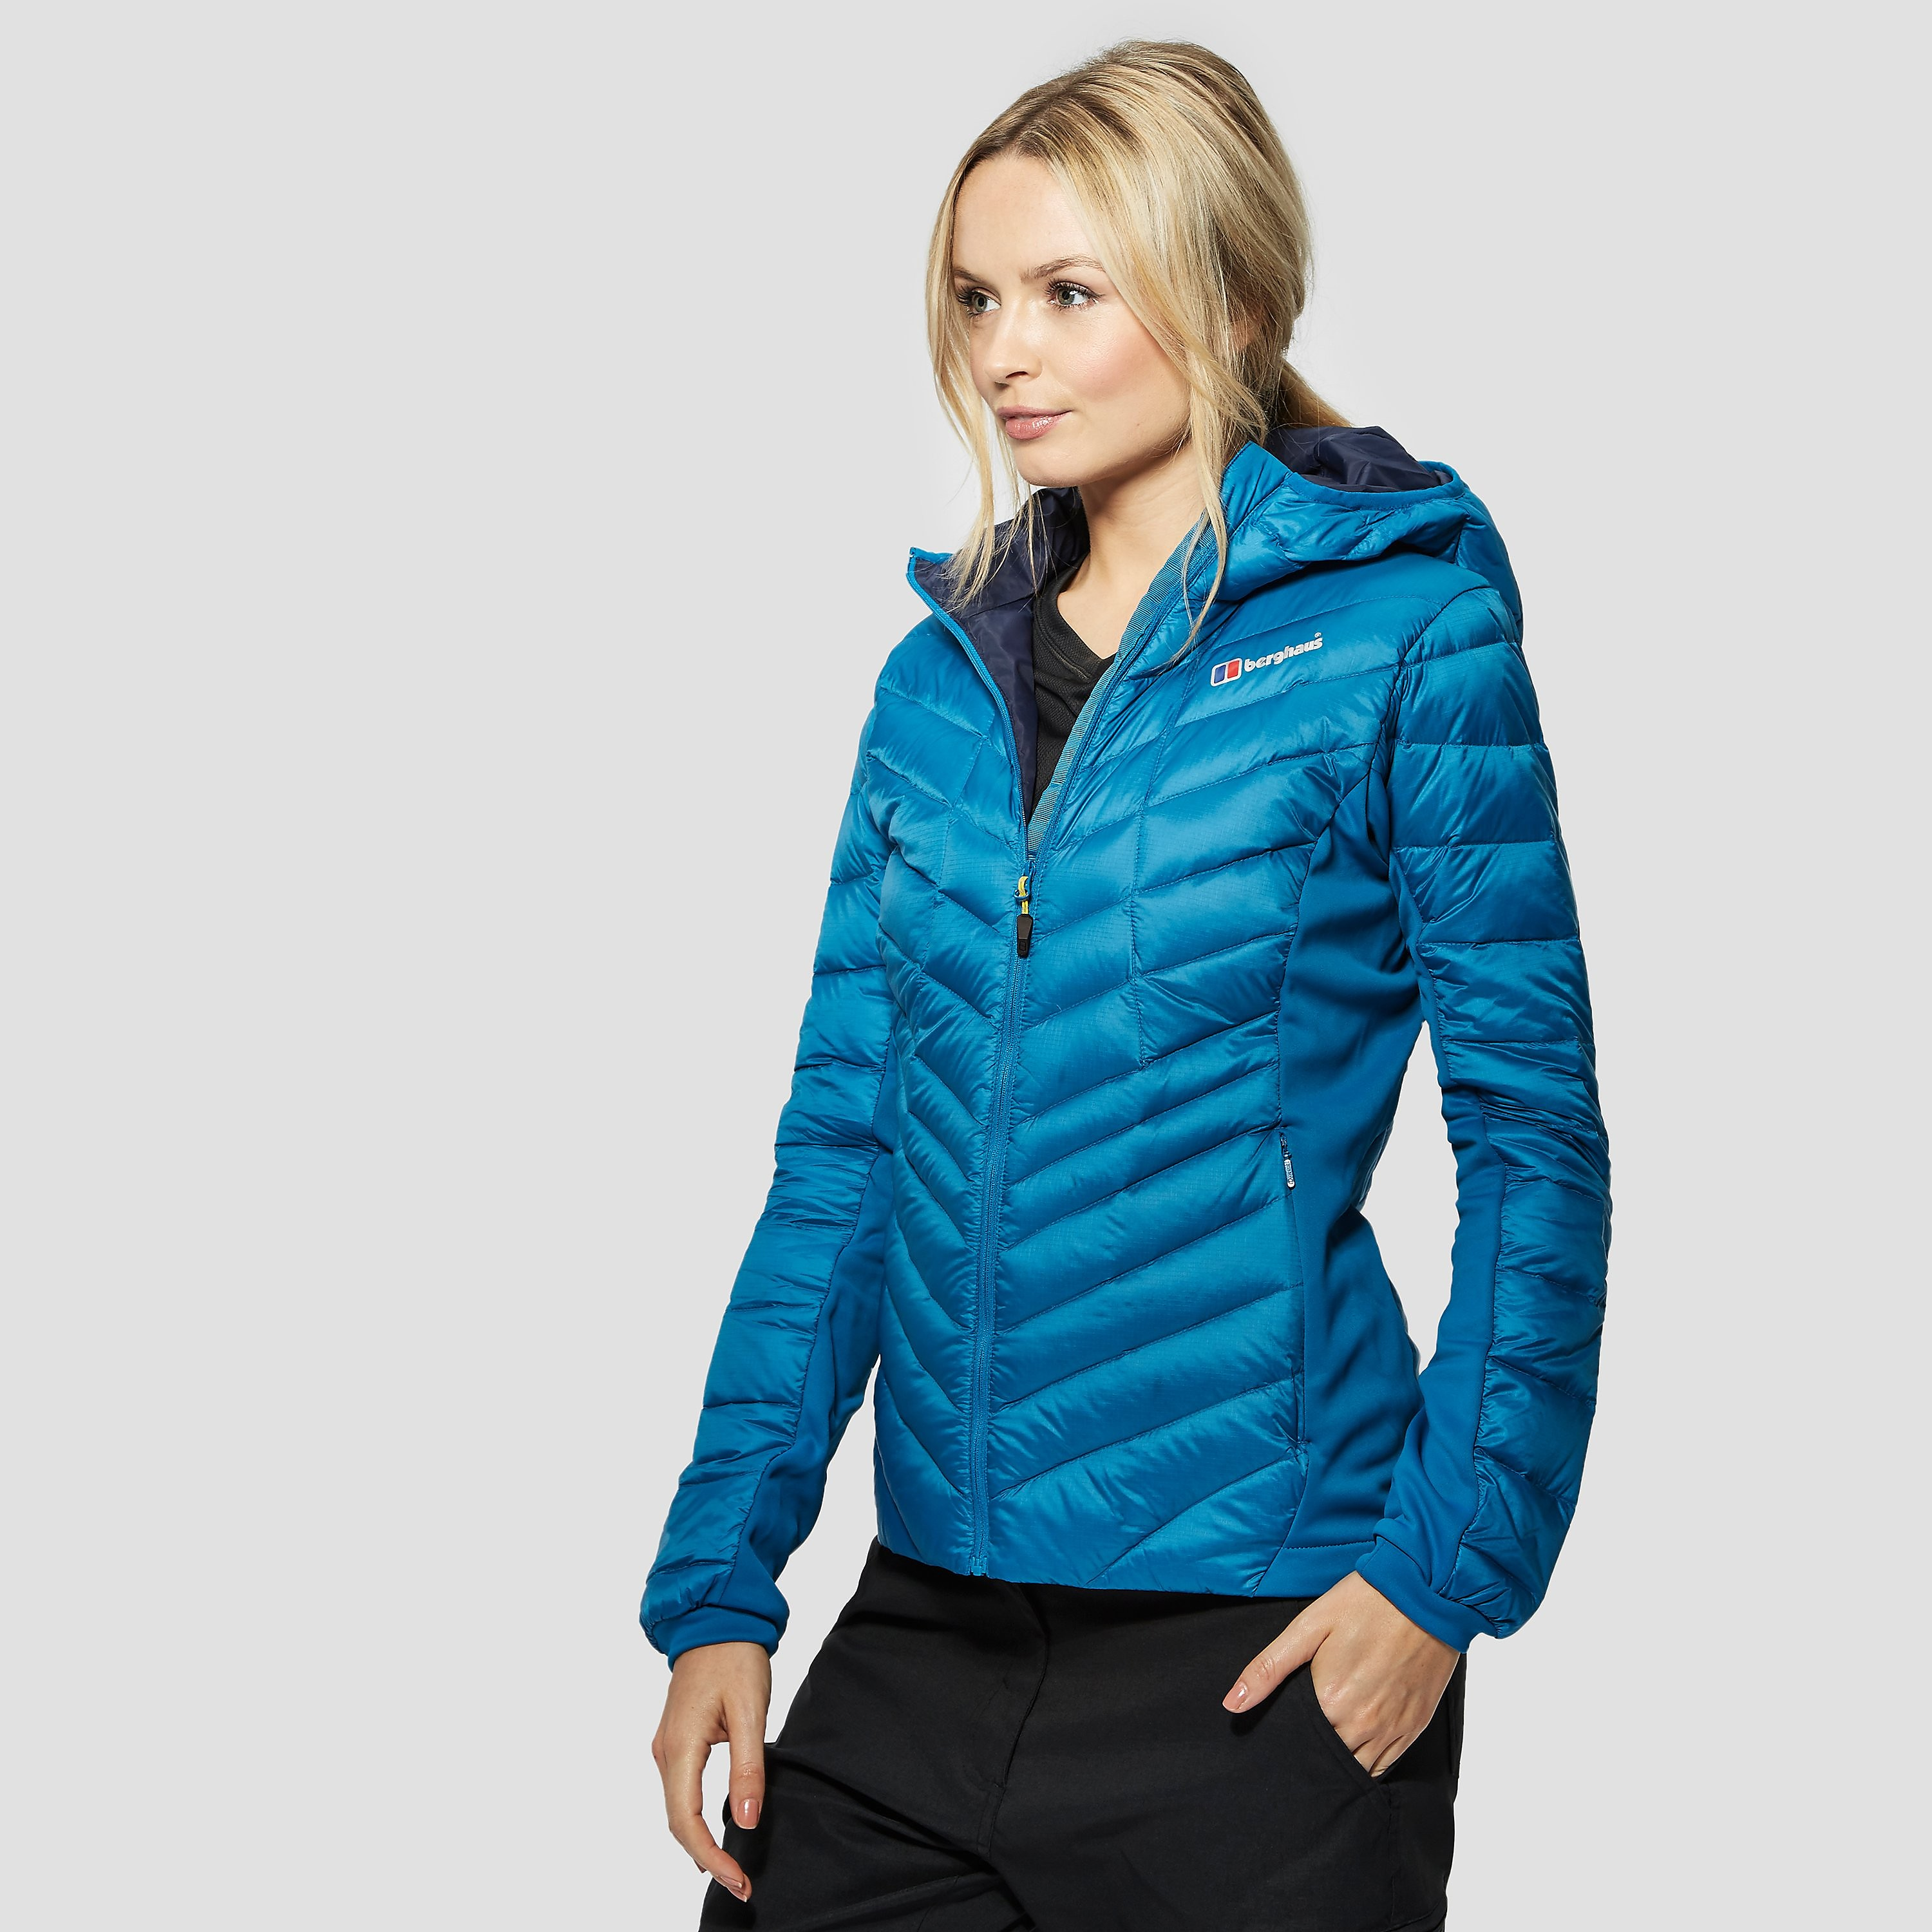 Berghaus Scafell Stretch HydroDown Women's Jacket